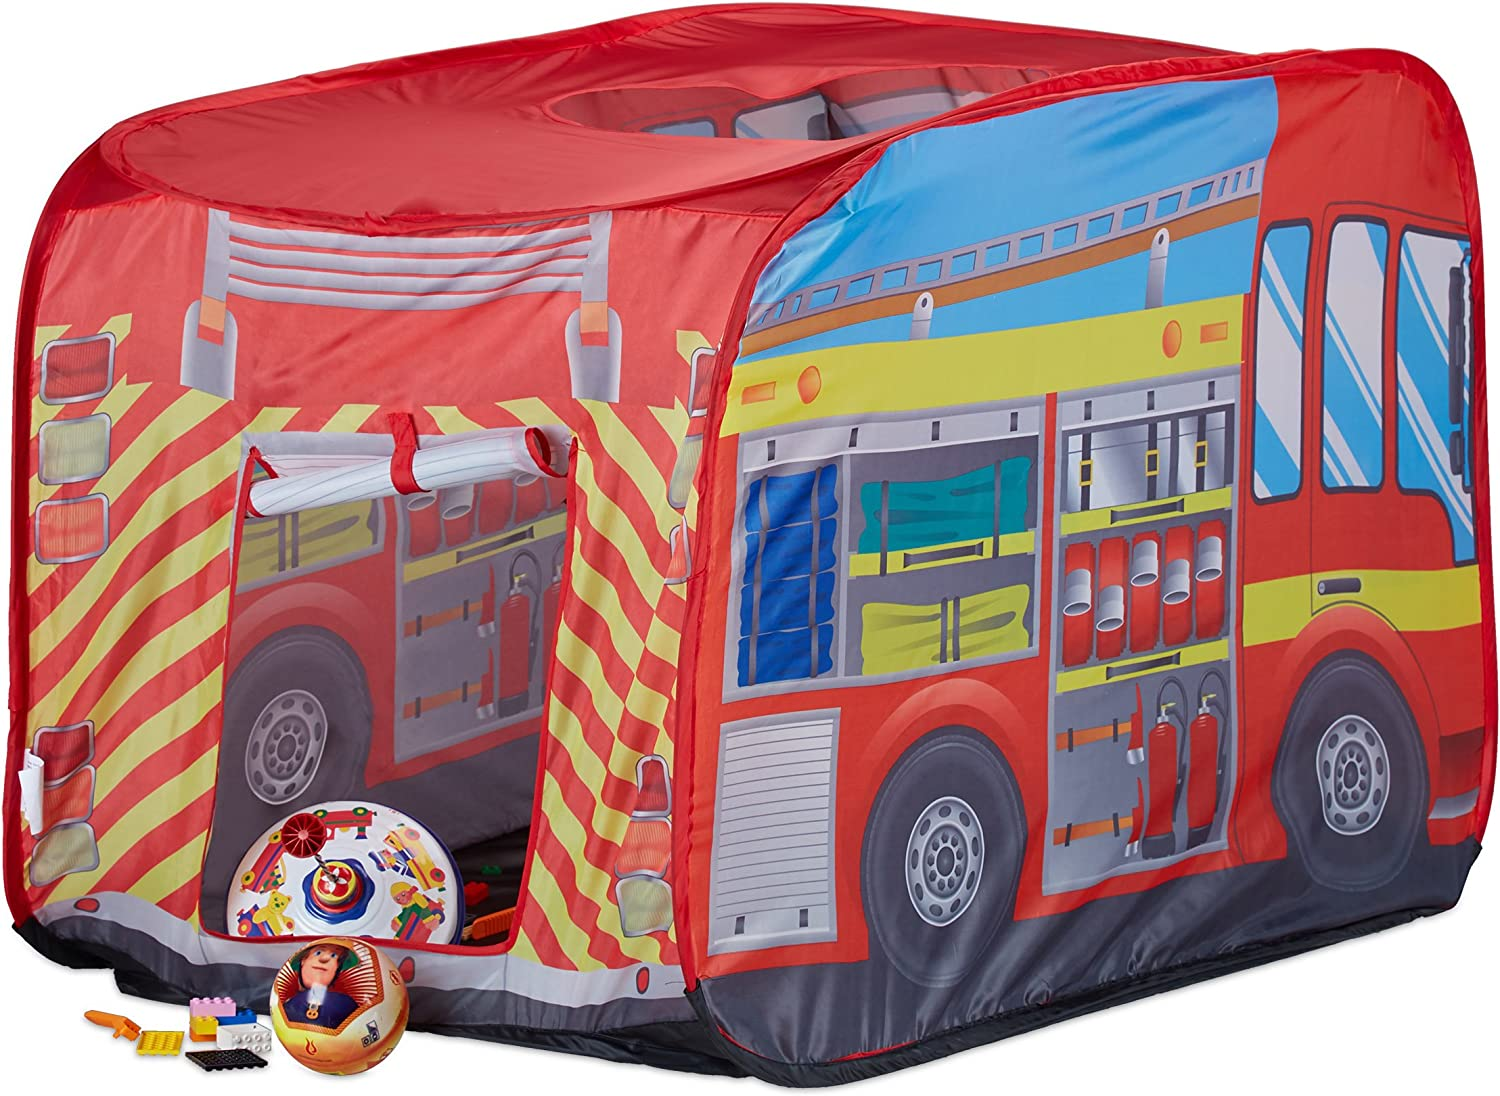 Relaxdays Fire Brigade Play Tent, Pop Up Fire Truck Playhouse, For Indoor & Outdoor Use, 70x110x70 cm, Age 3 and Up, Red